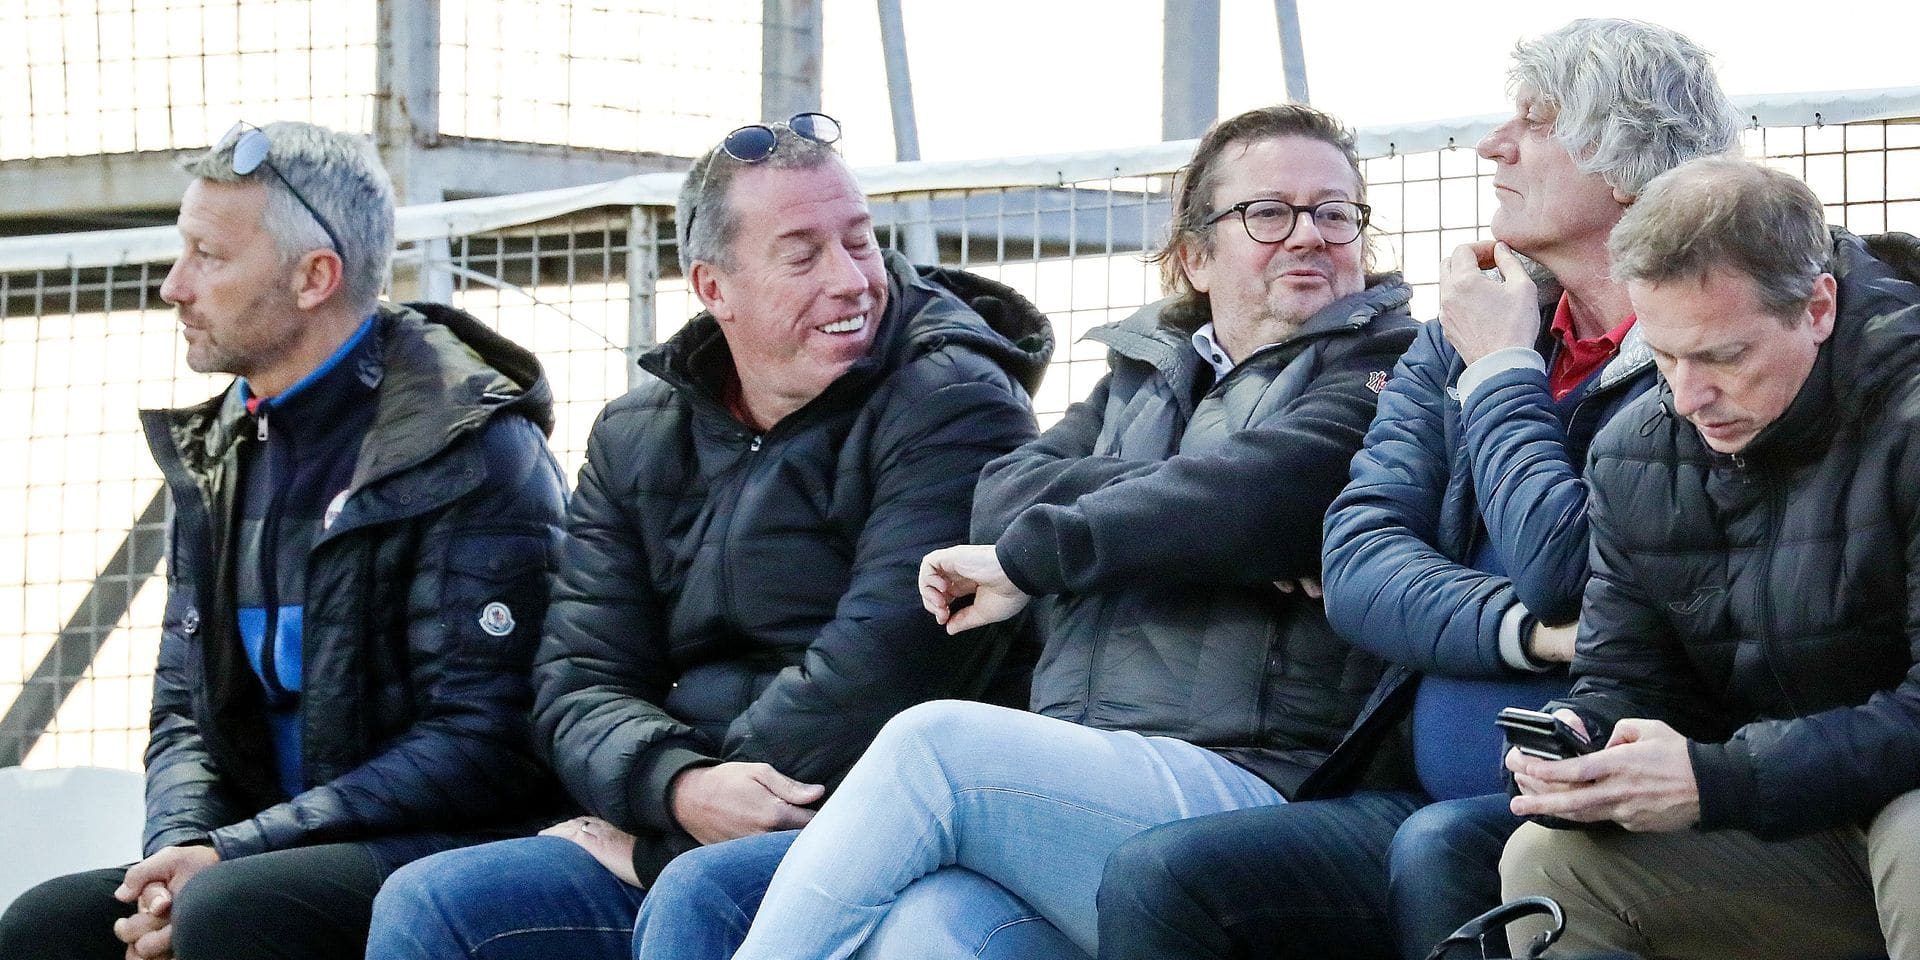 Didier Frenay, Luc Devroe and Marc Coucke pictured during a friendly soccer game between Belgian team Royal Charleroi Sporting Club and South Korean club FC Seoul, during Charleroi's winter training camp in San Pedro del Pinatar, Murcia, Spain, Wednesday 10 January 2018. BELGA PHOTO VIRGINIE LEFOUR